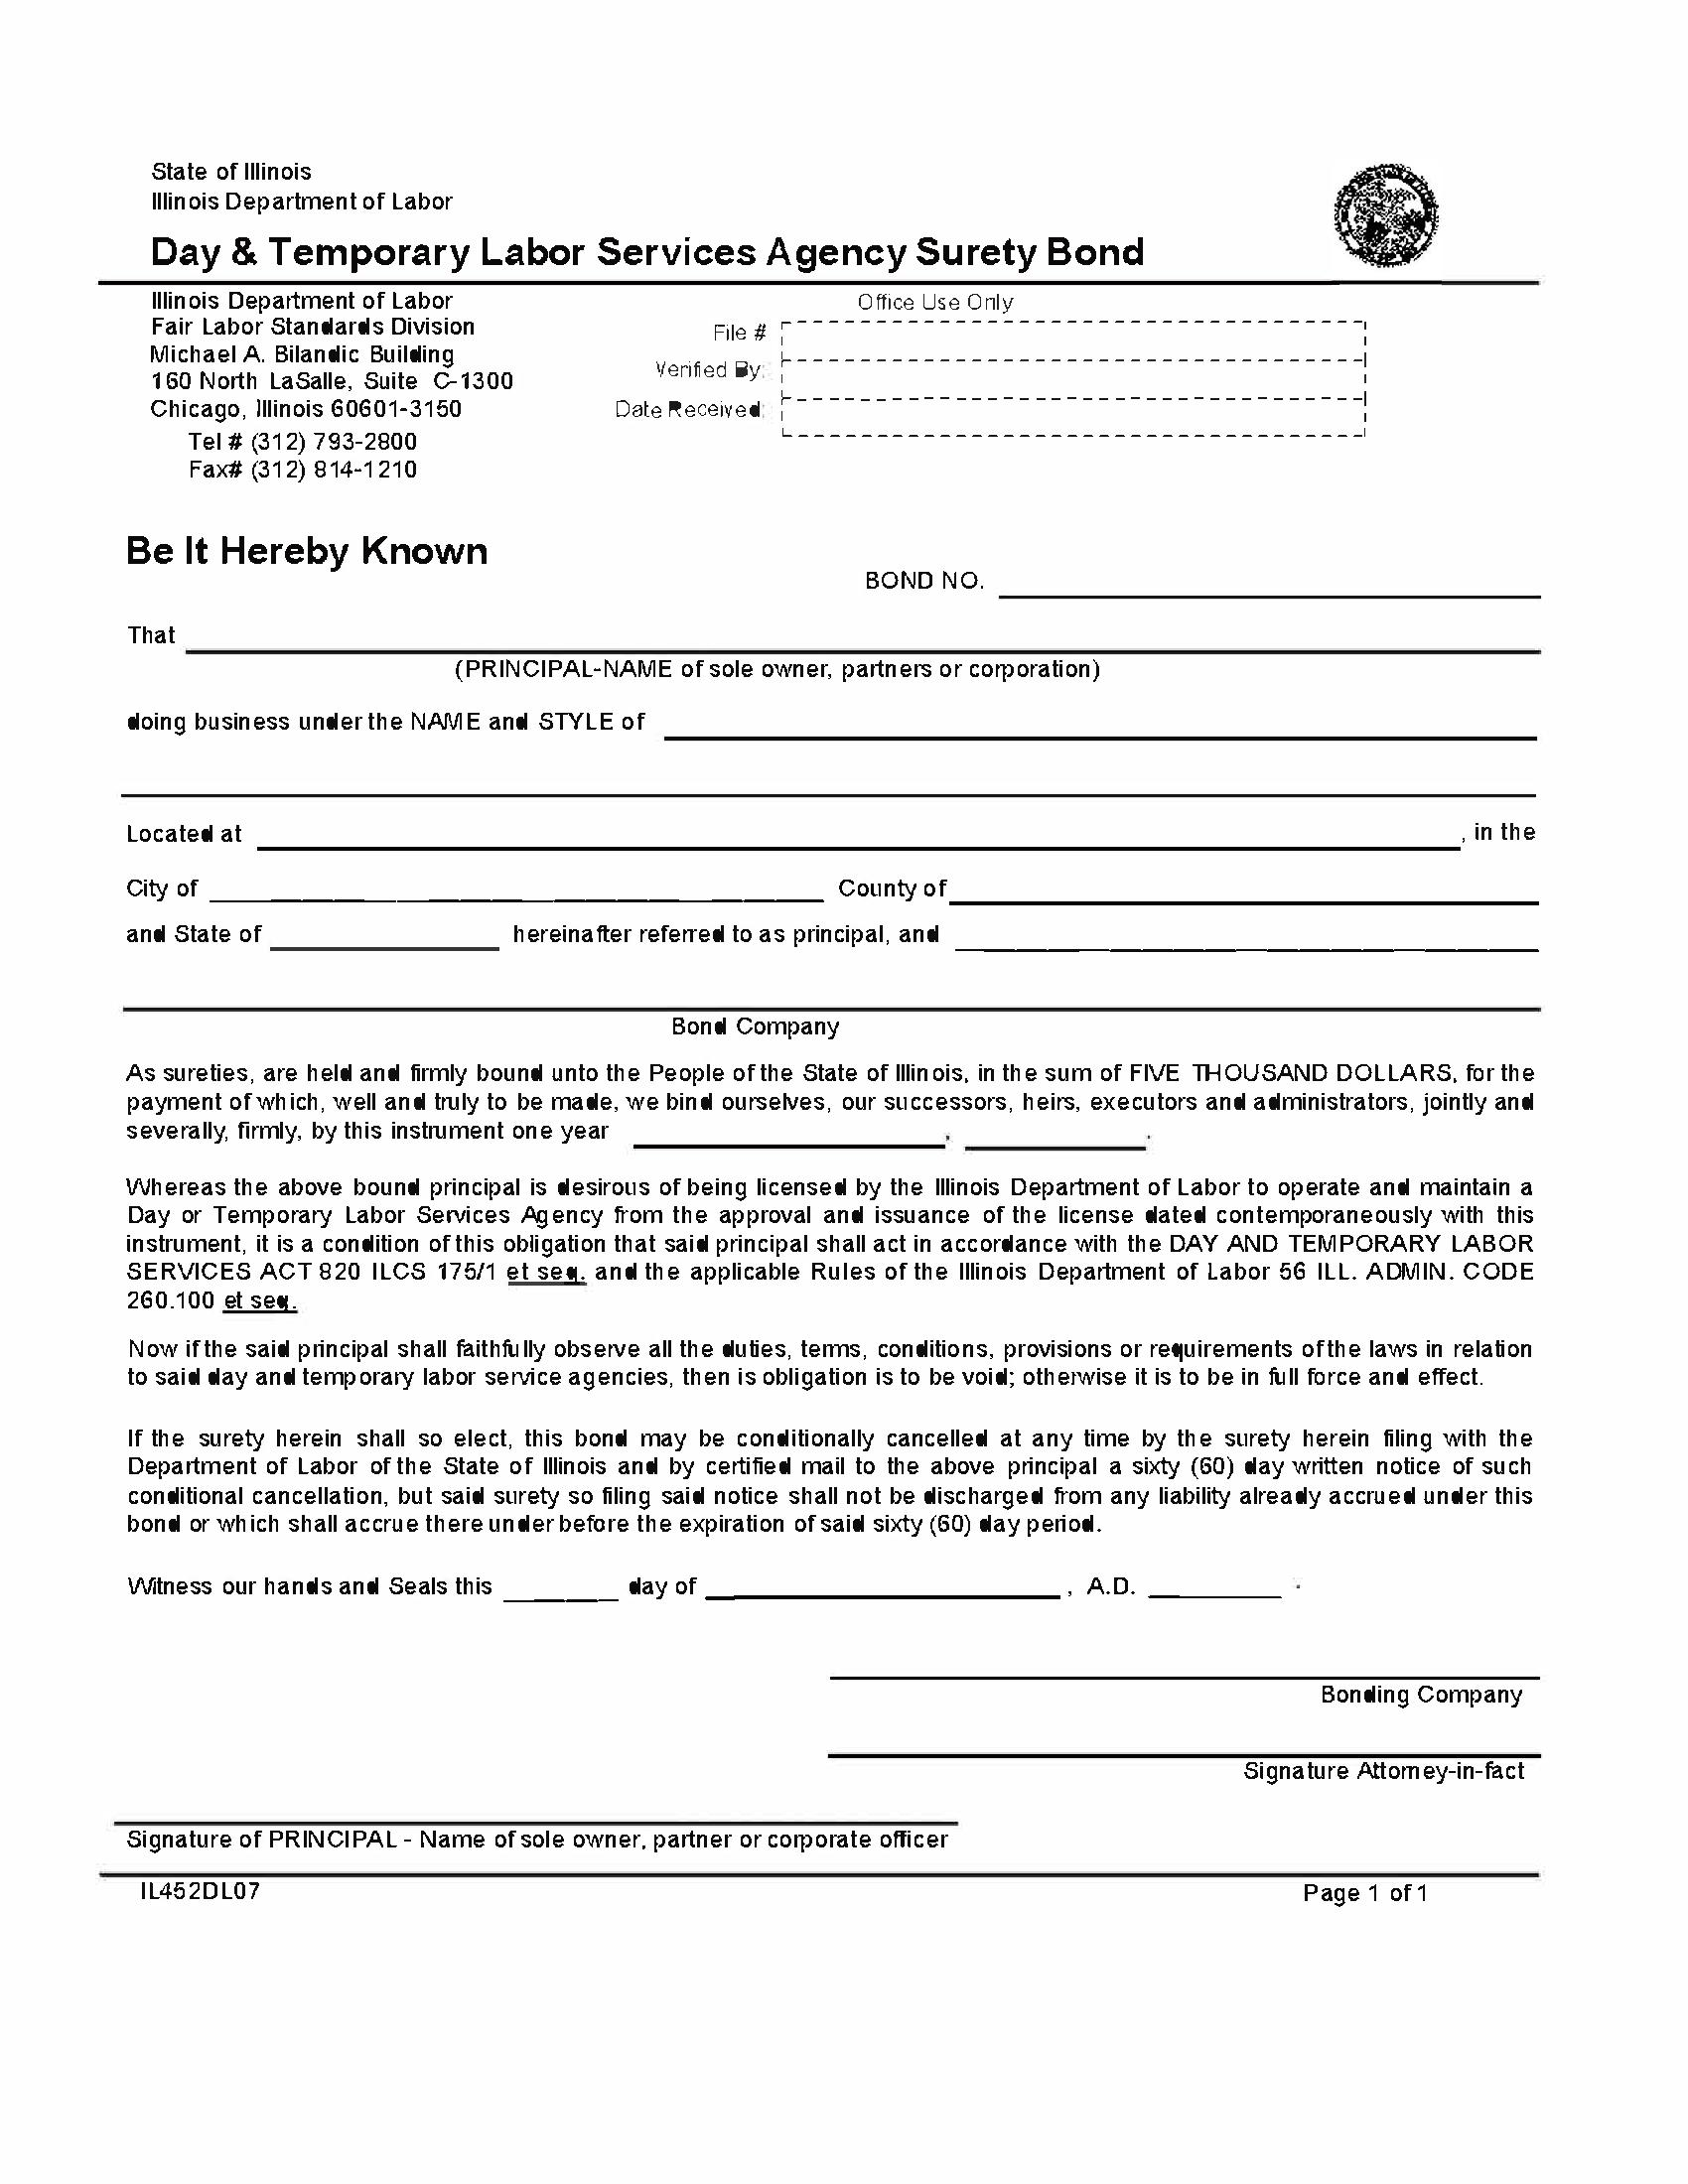 State of Illinois Day & Temporary Labor Services Agency sample image